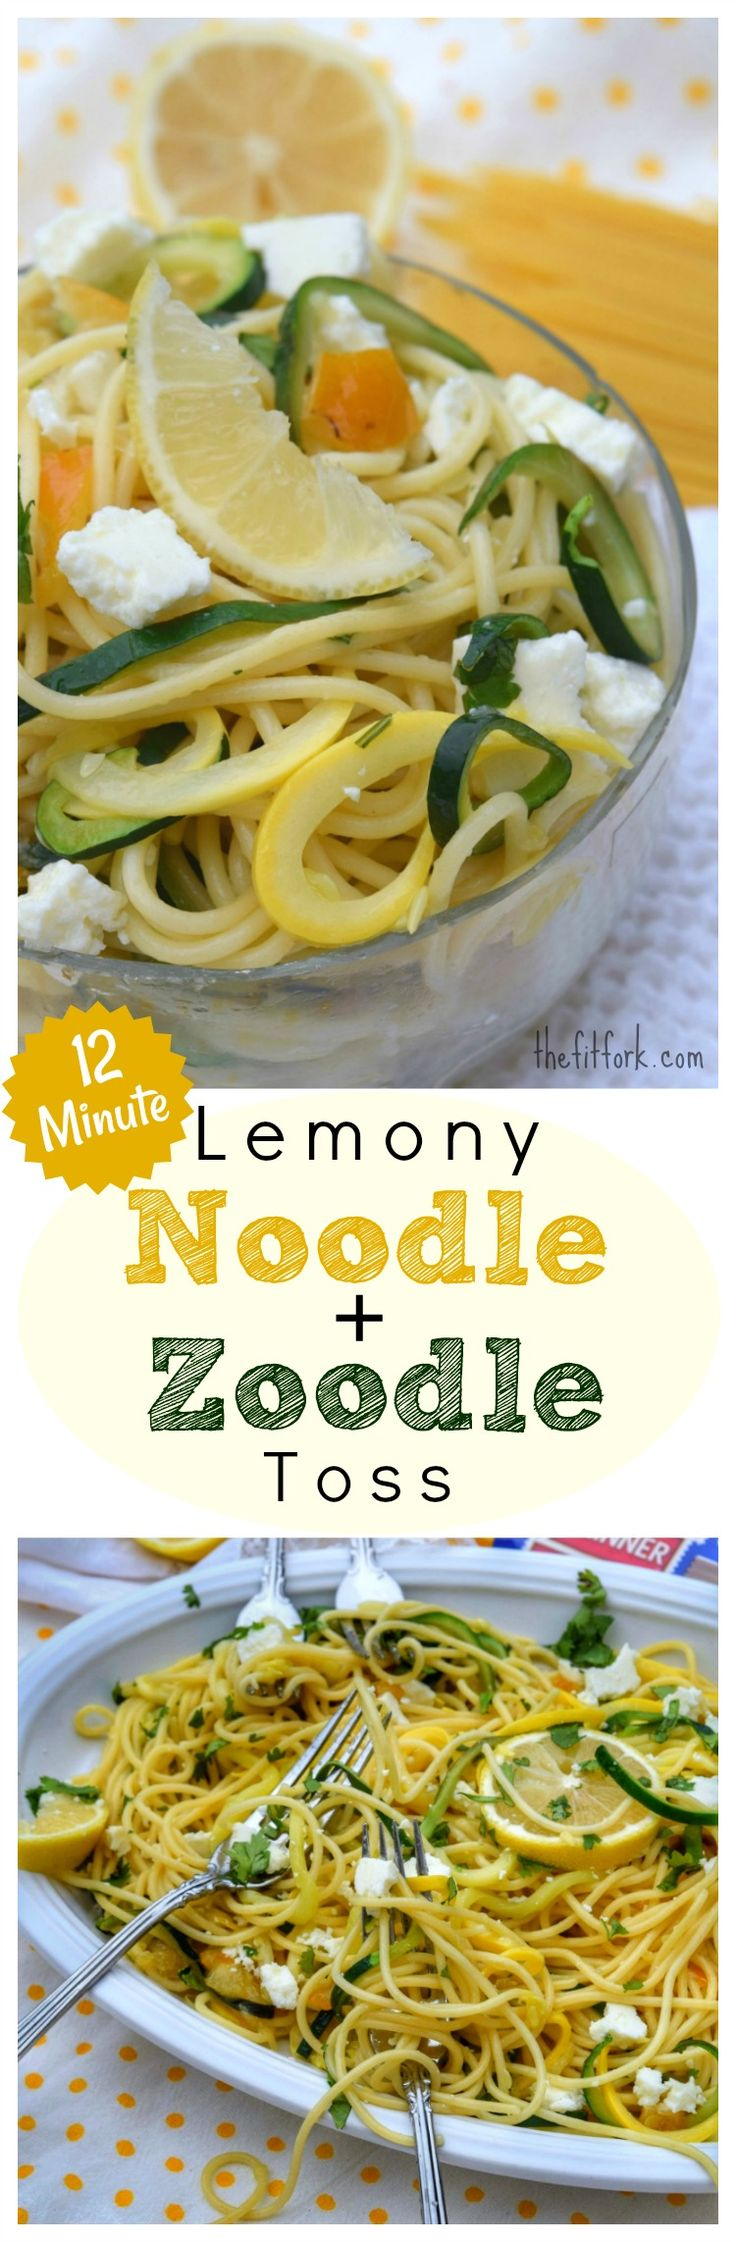 12 Minute Lemony Noodle Zoodle Toss - this pasta and squash dish is super easy and comes together in one part in just the short time it takes to boil the noodles. Great as a side dish or paired with your favorite lean protein for lunch or dinner. Made with @skinnerpasta the #1 Pasta in Texas! AD